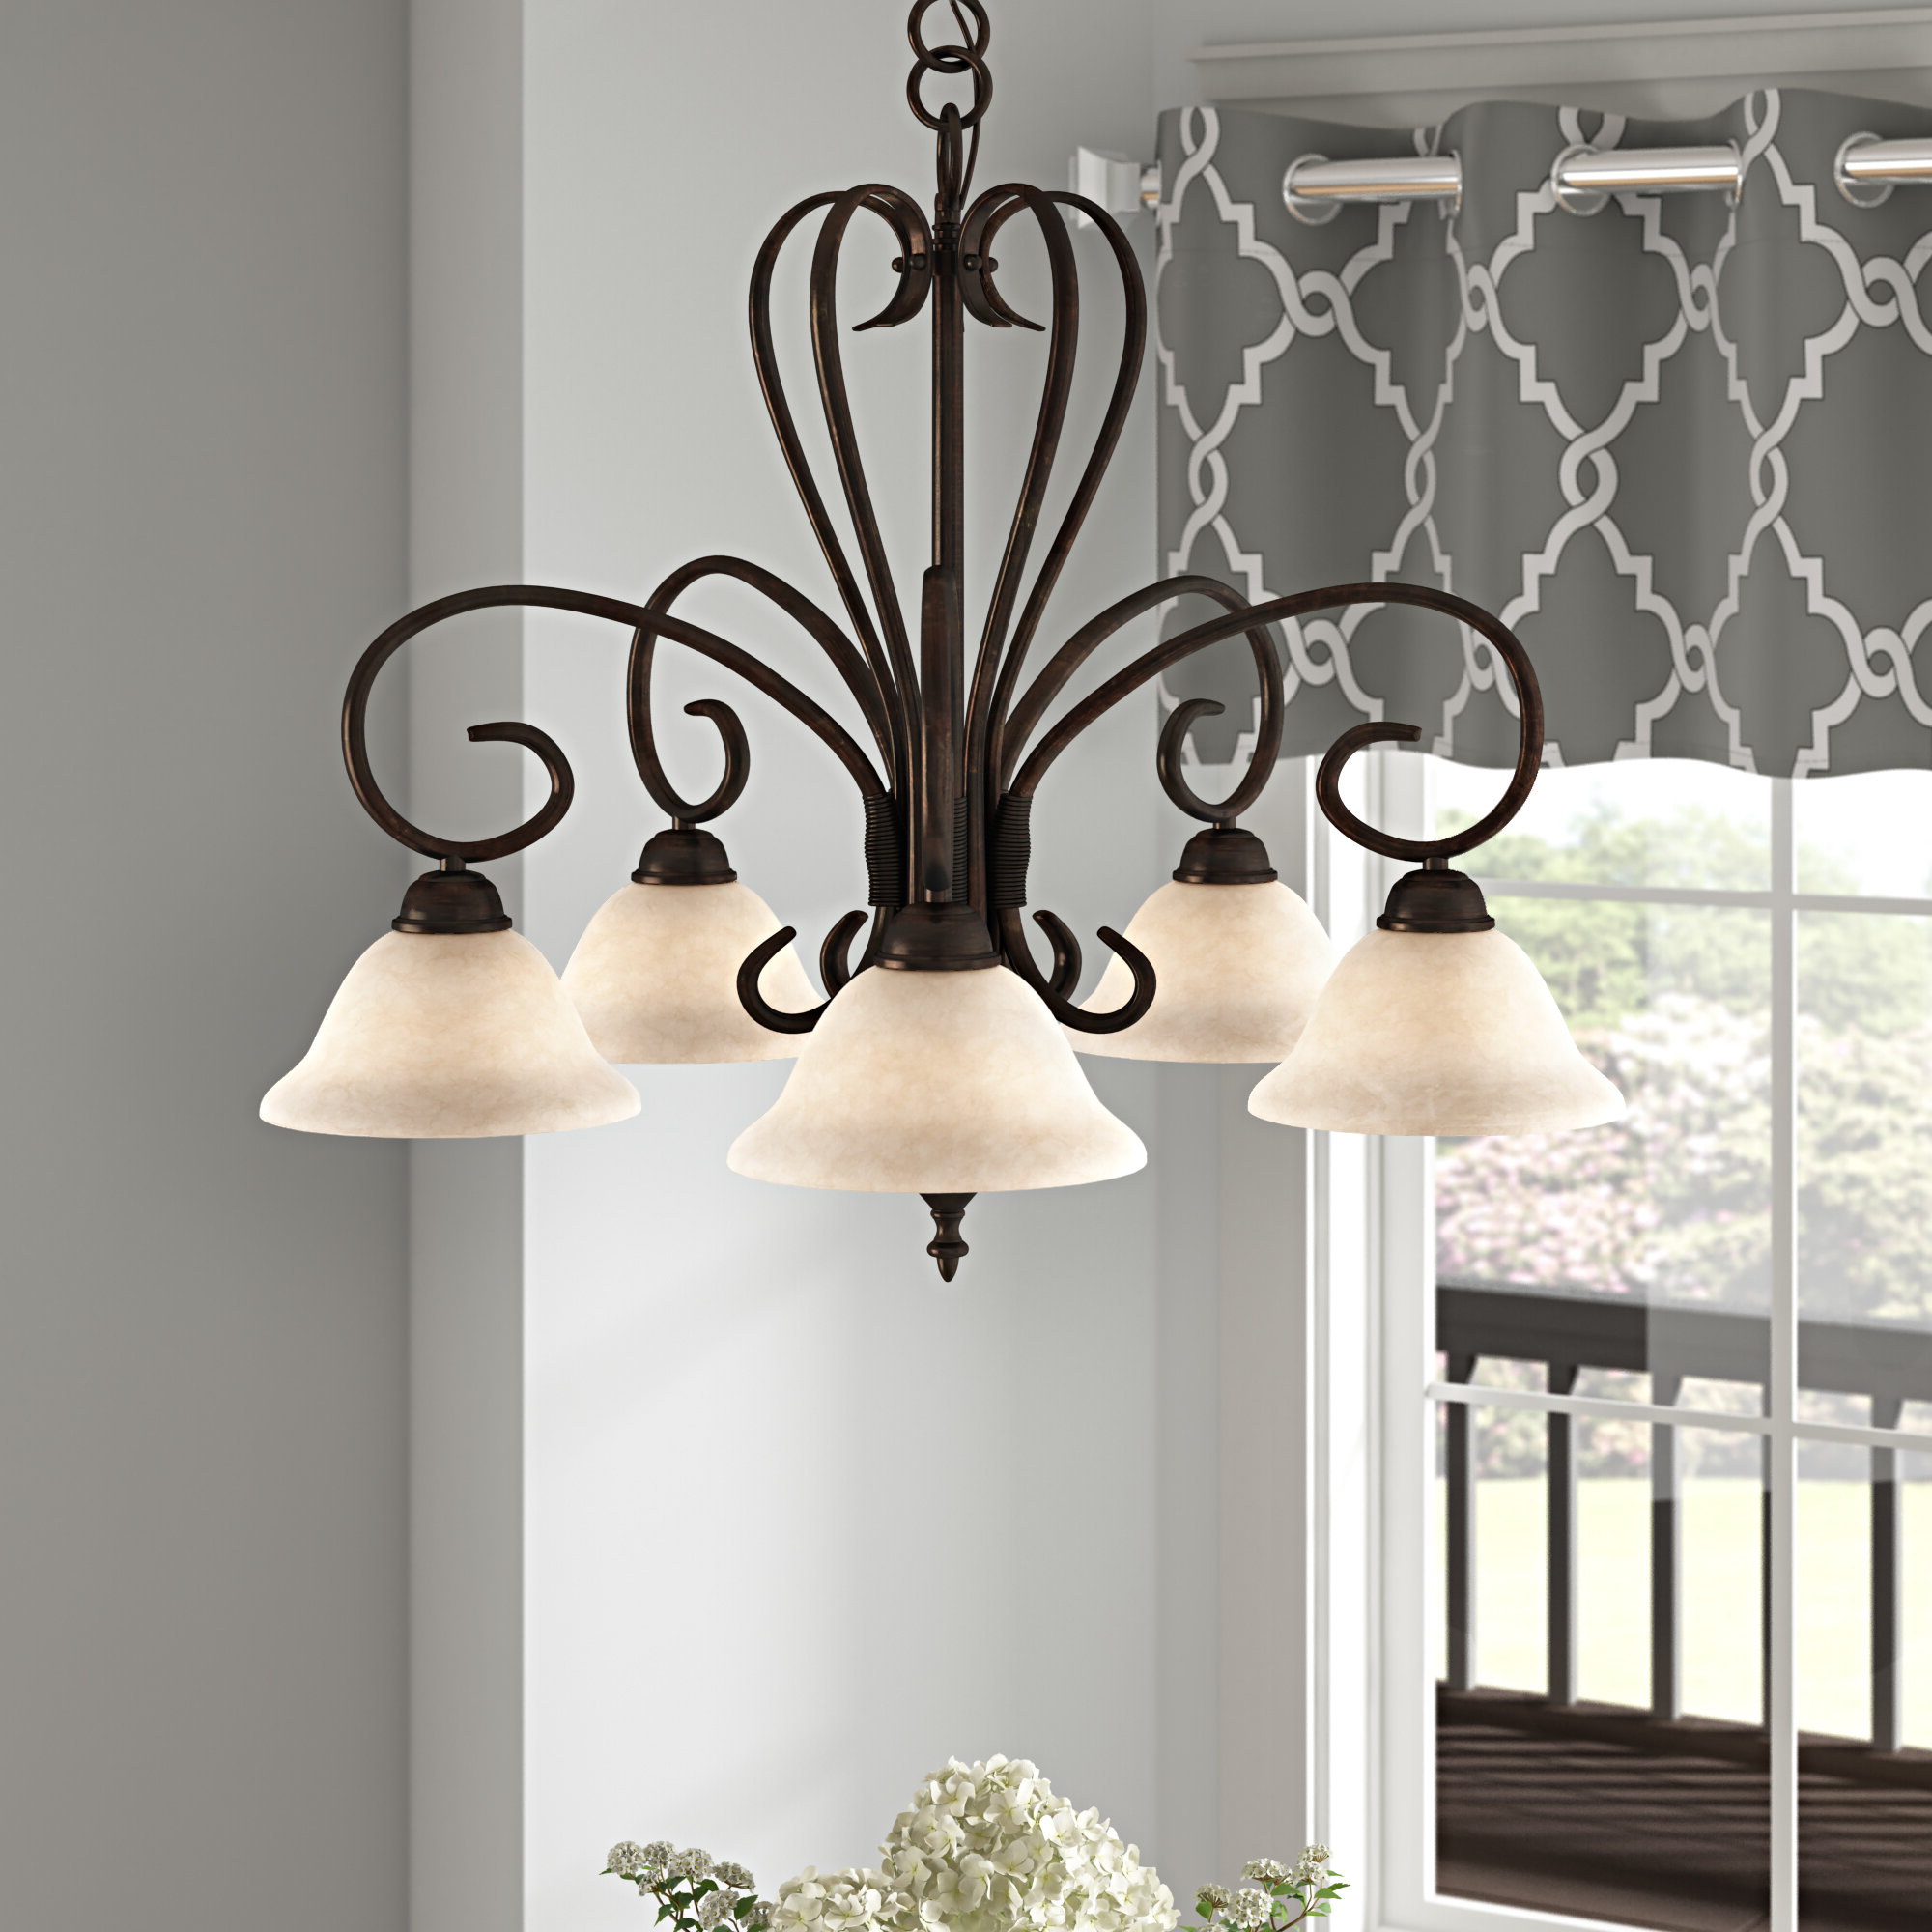 Newent 5 Light Shaded Chandeliers With Best And Newest Gaines 5 Light Shaded Chandelier (View 17 of 25)